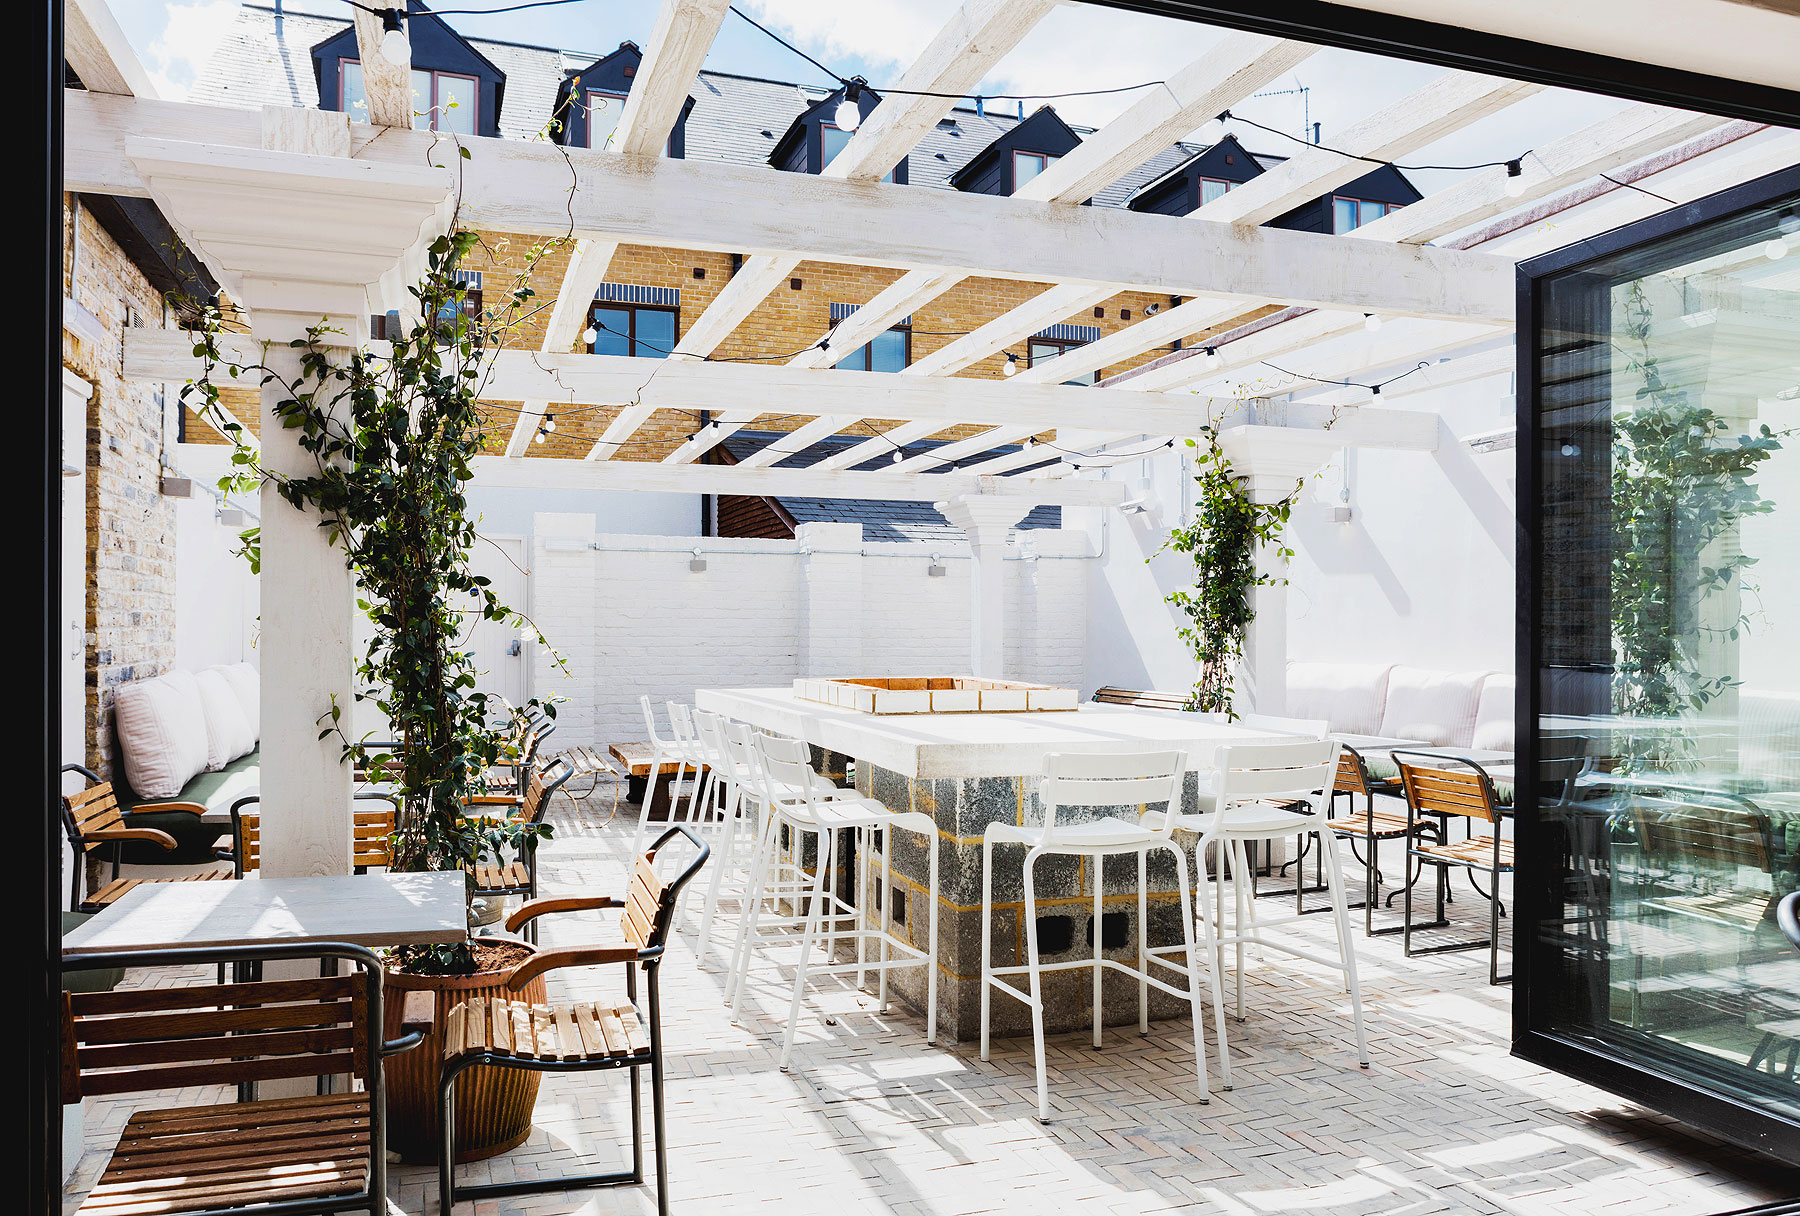 The biggest transformations is the previously forgotten courtyard space, which has burst back into life